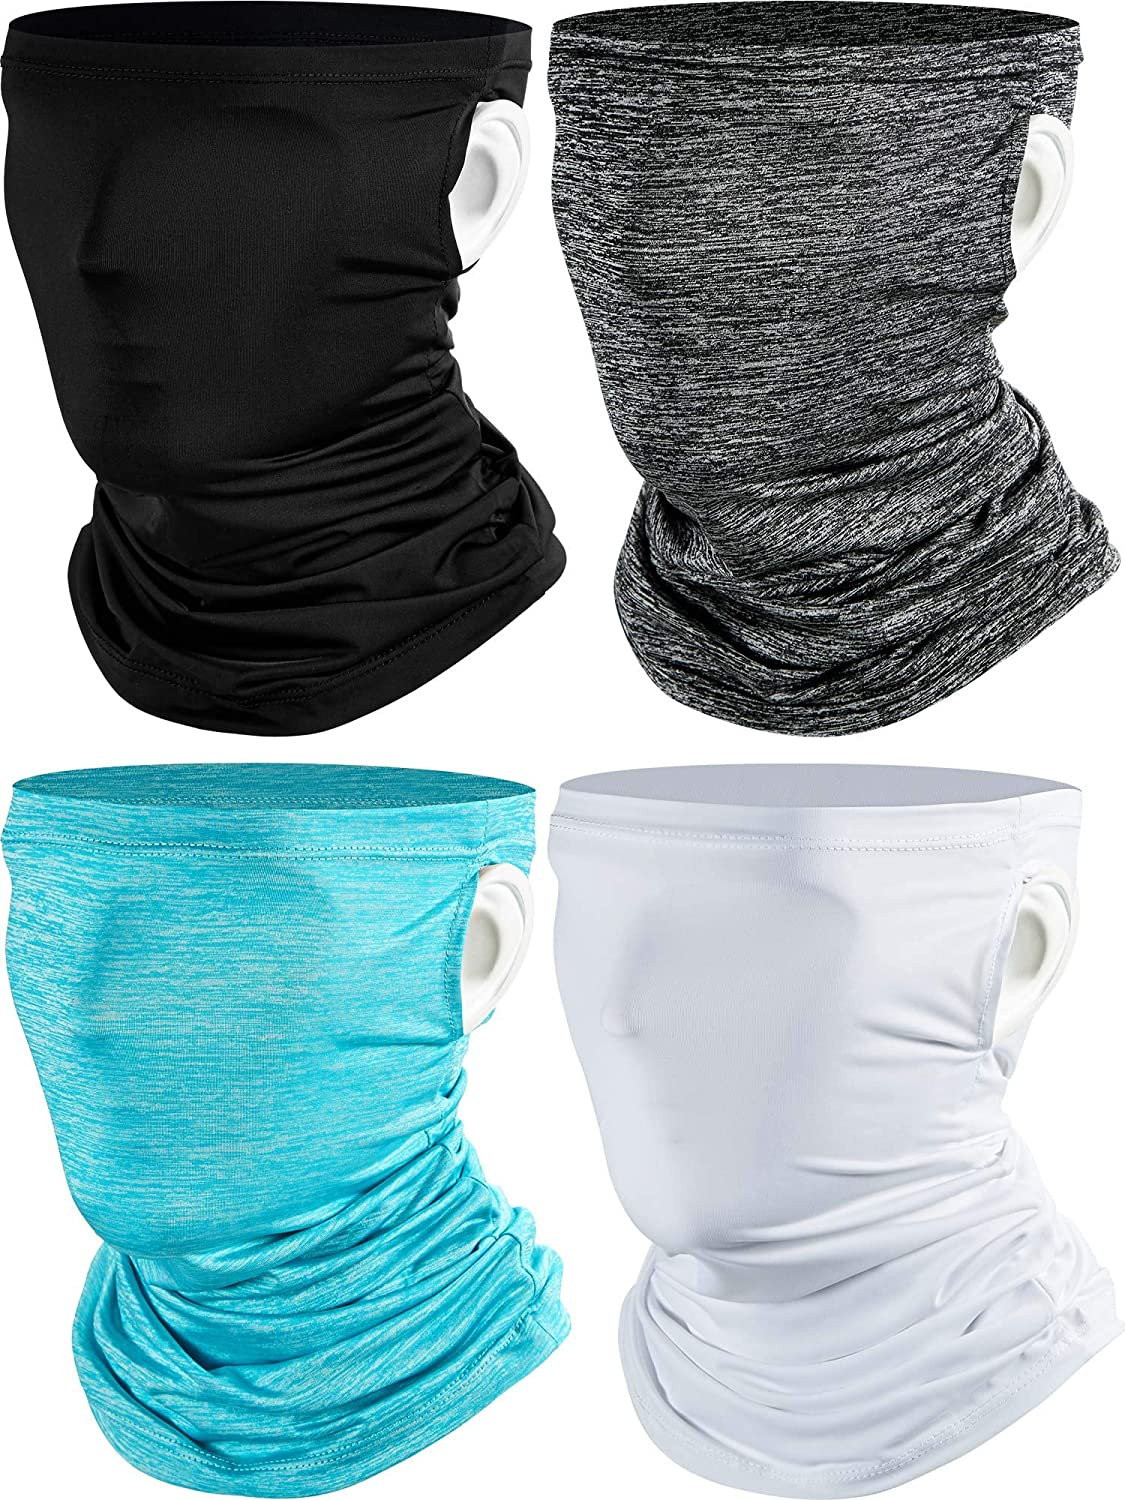 4 Pieces Ear Loops Neck Gaiter Face Cover Scarf Cooling Bandanas Balaclava Headwear for Wind Sun UV and Dust Protection